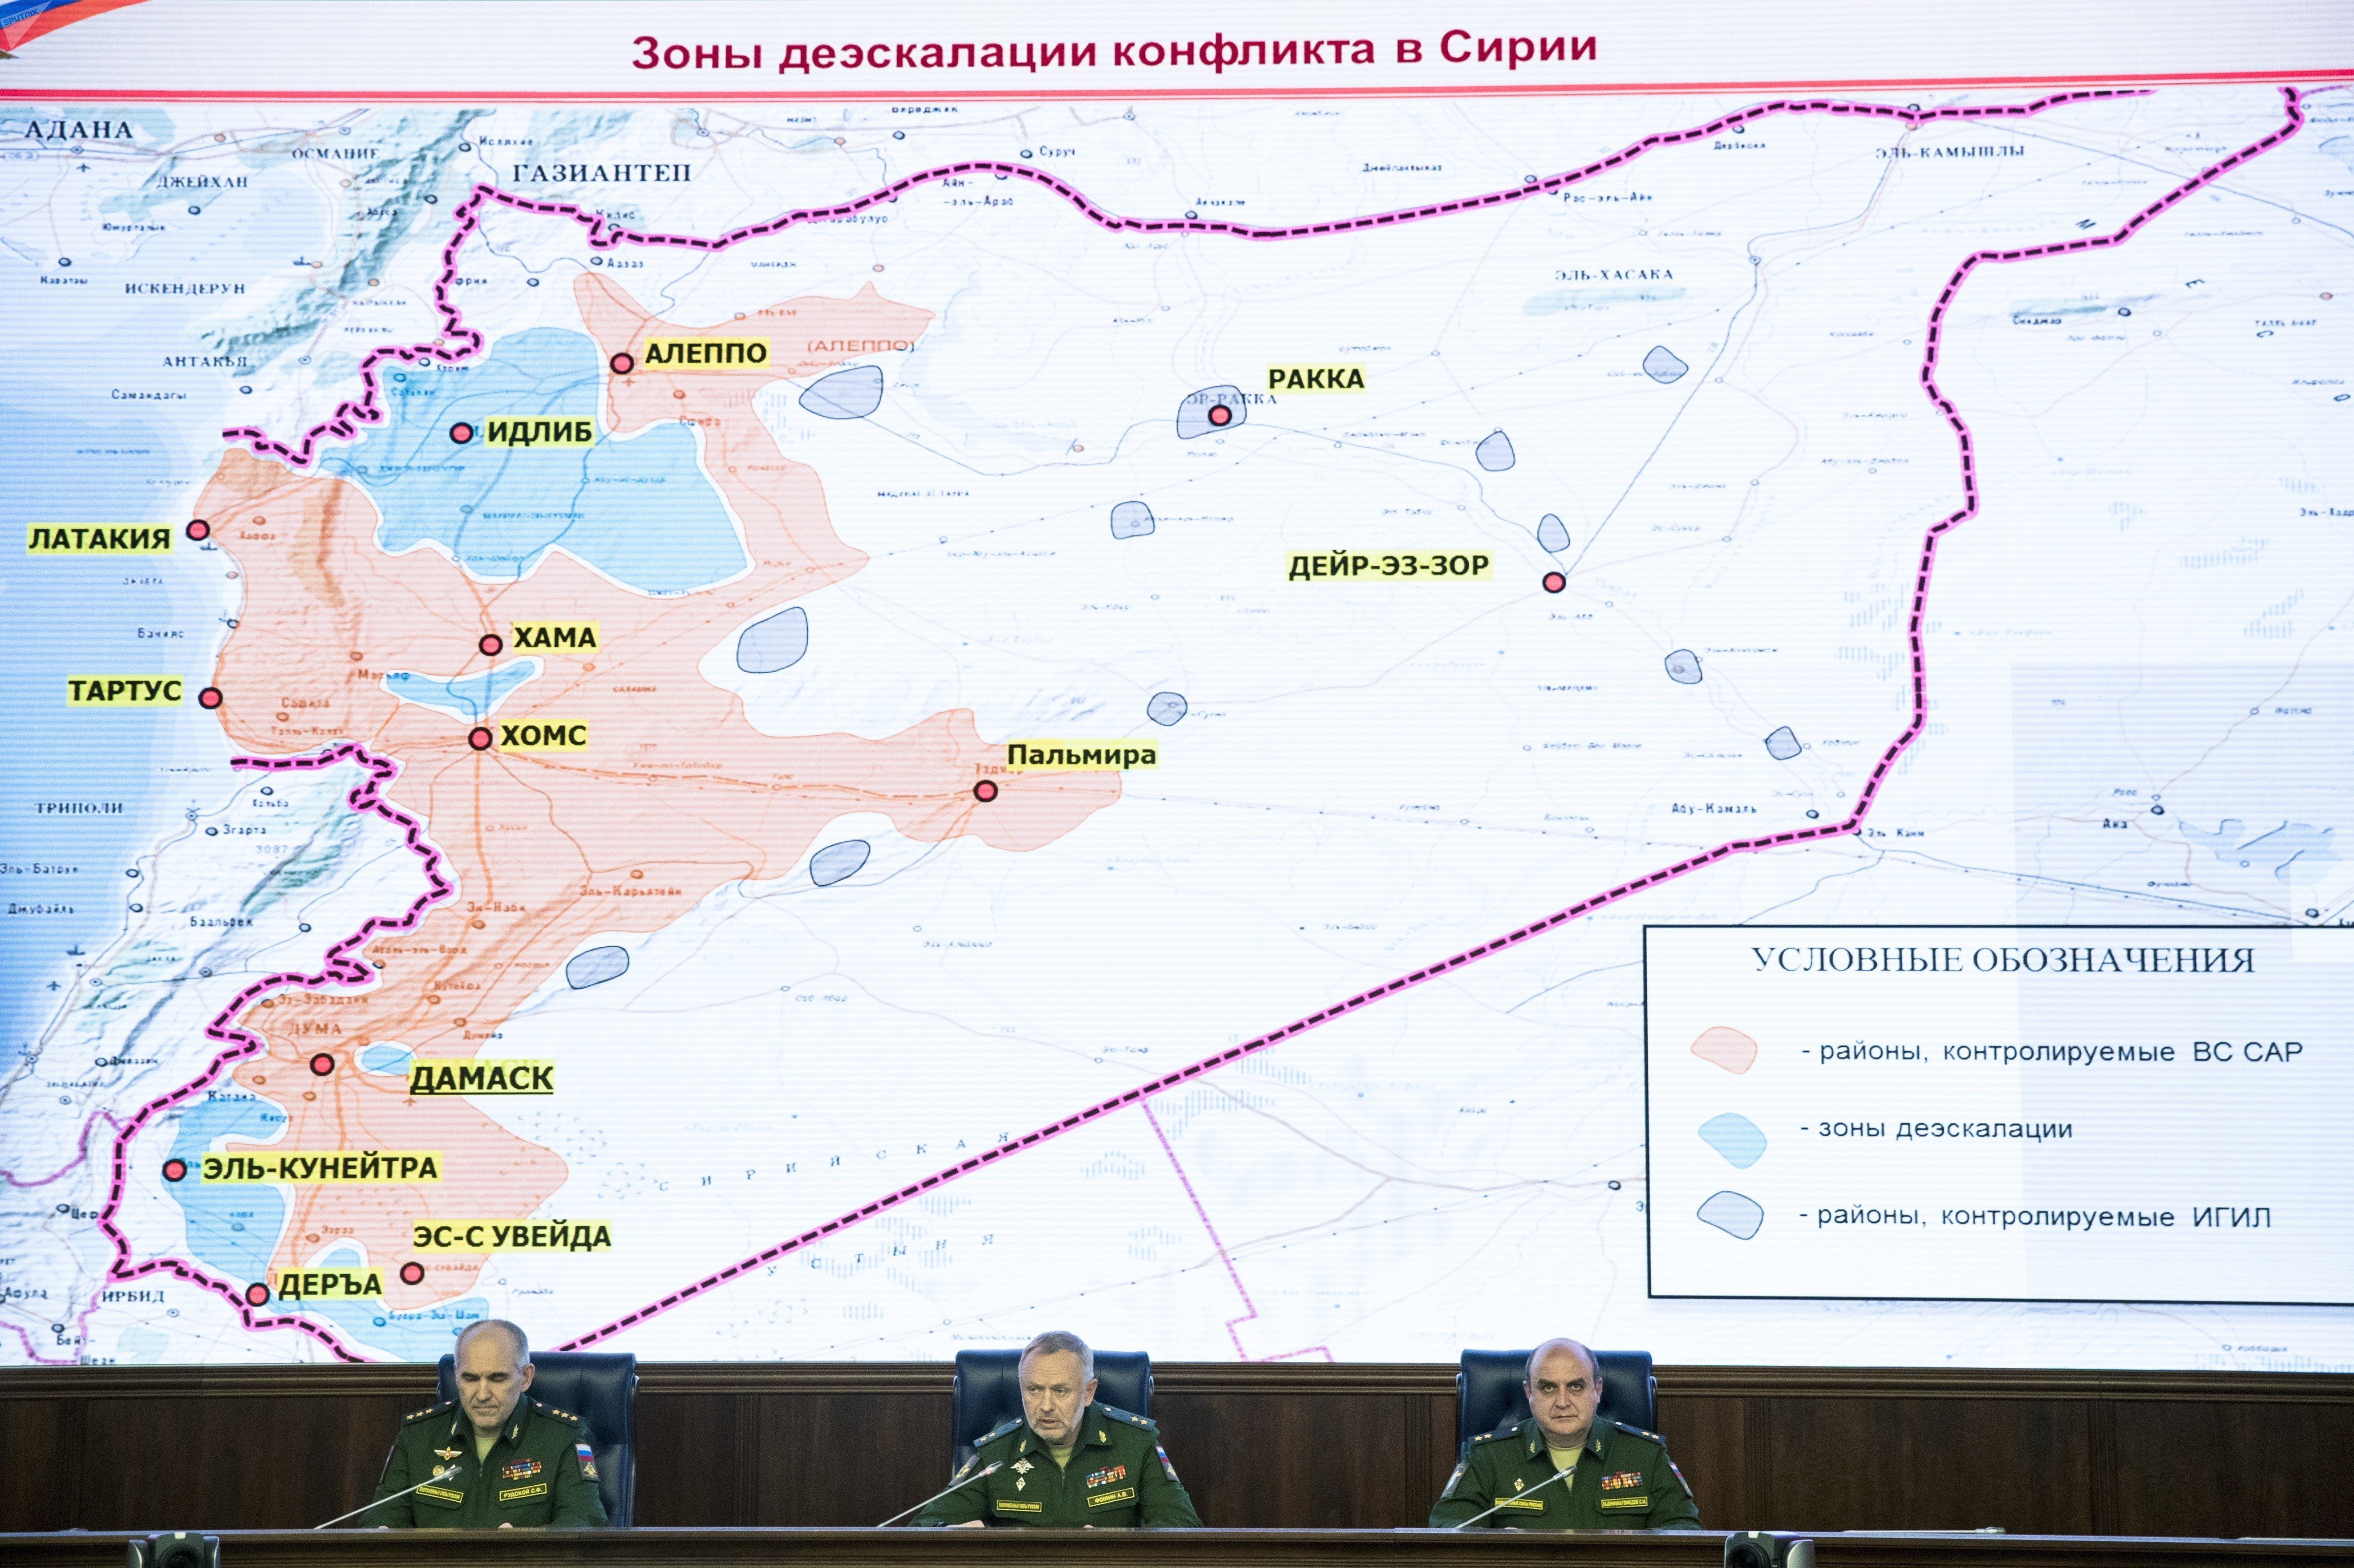 From left, Col. Gen. Sergei Rudskoi of the Russian General Staff, Deputy Defense Minister Alexander Fomin and Lt. Gen. Stanislav Gadzhimagomedov attend a briefing in the Defense Ministry in Moscow, Russia, Friday, May 5, 2017. Map displayed in the background shows regions controlled by the Syrian Army (in red), the de-escalation zones (in green), and areas controlled by Daesh (in dark blue).